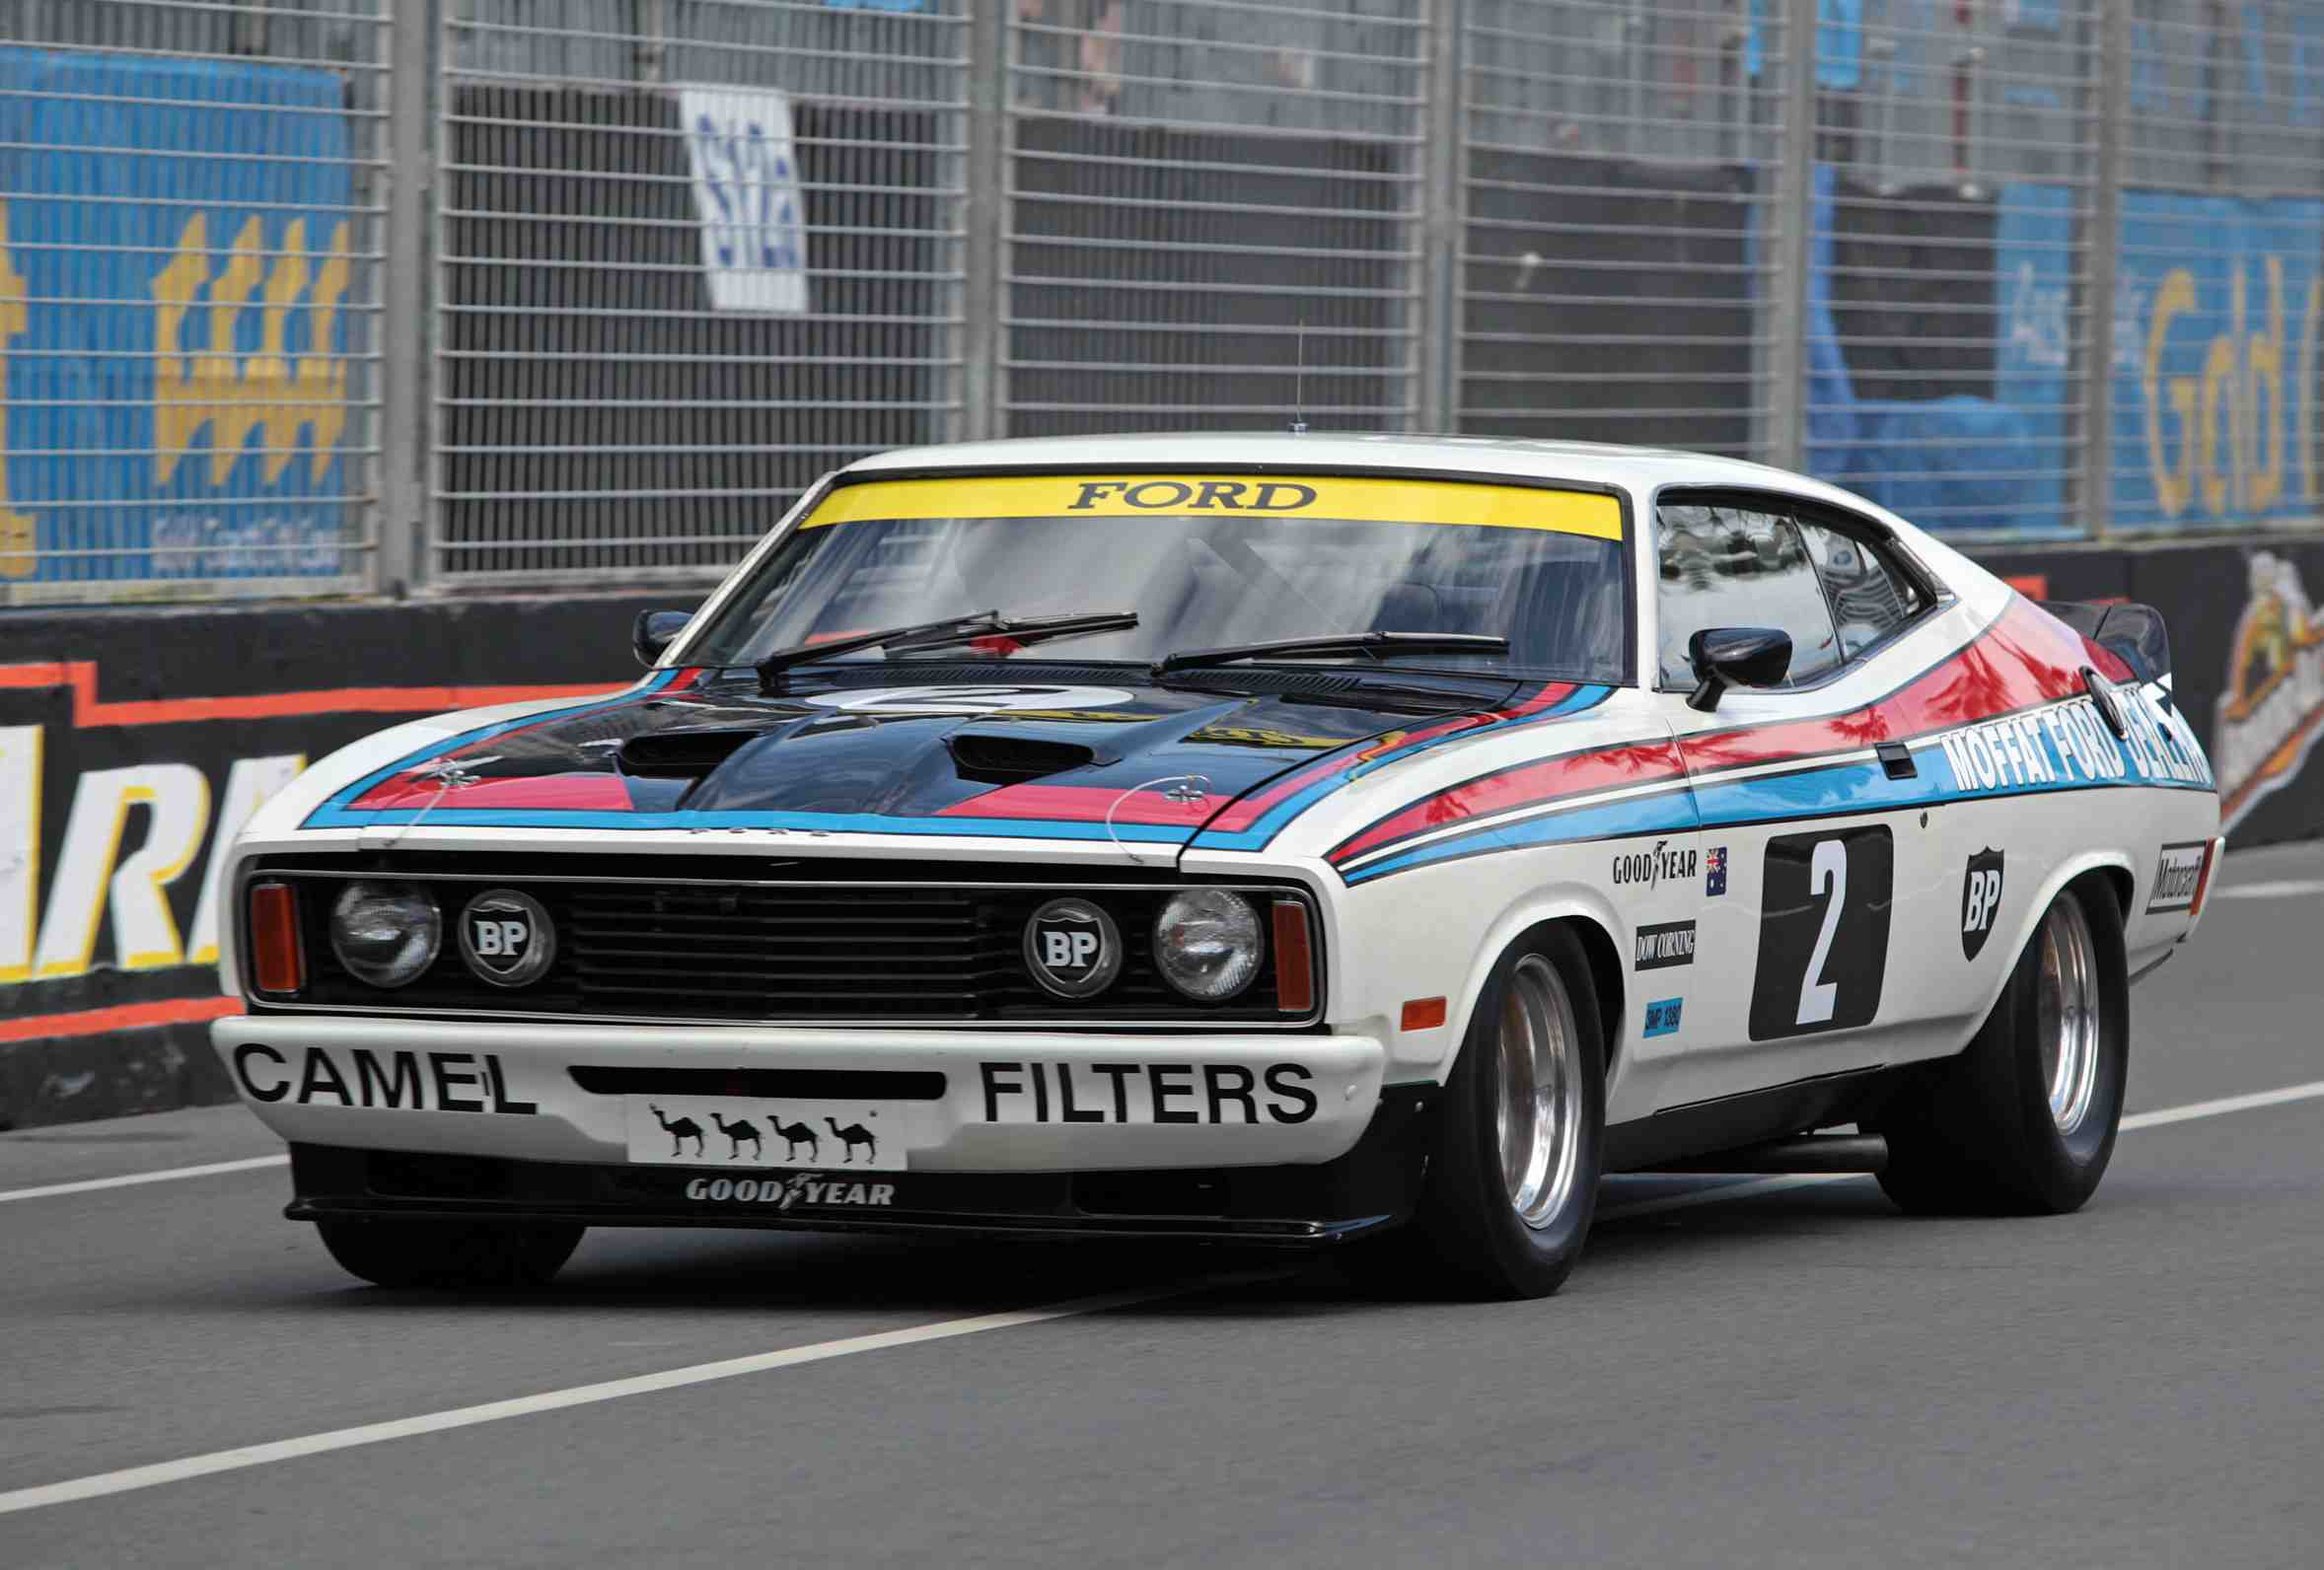 XC Falcon coupe that Colin Bond and Allan Hamilton drove